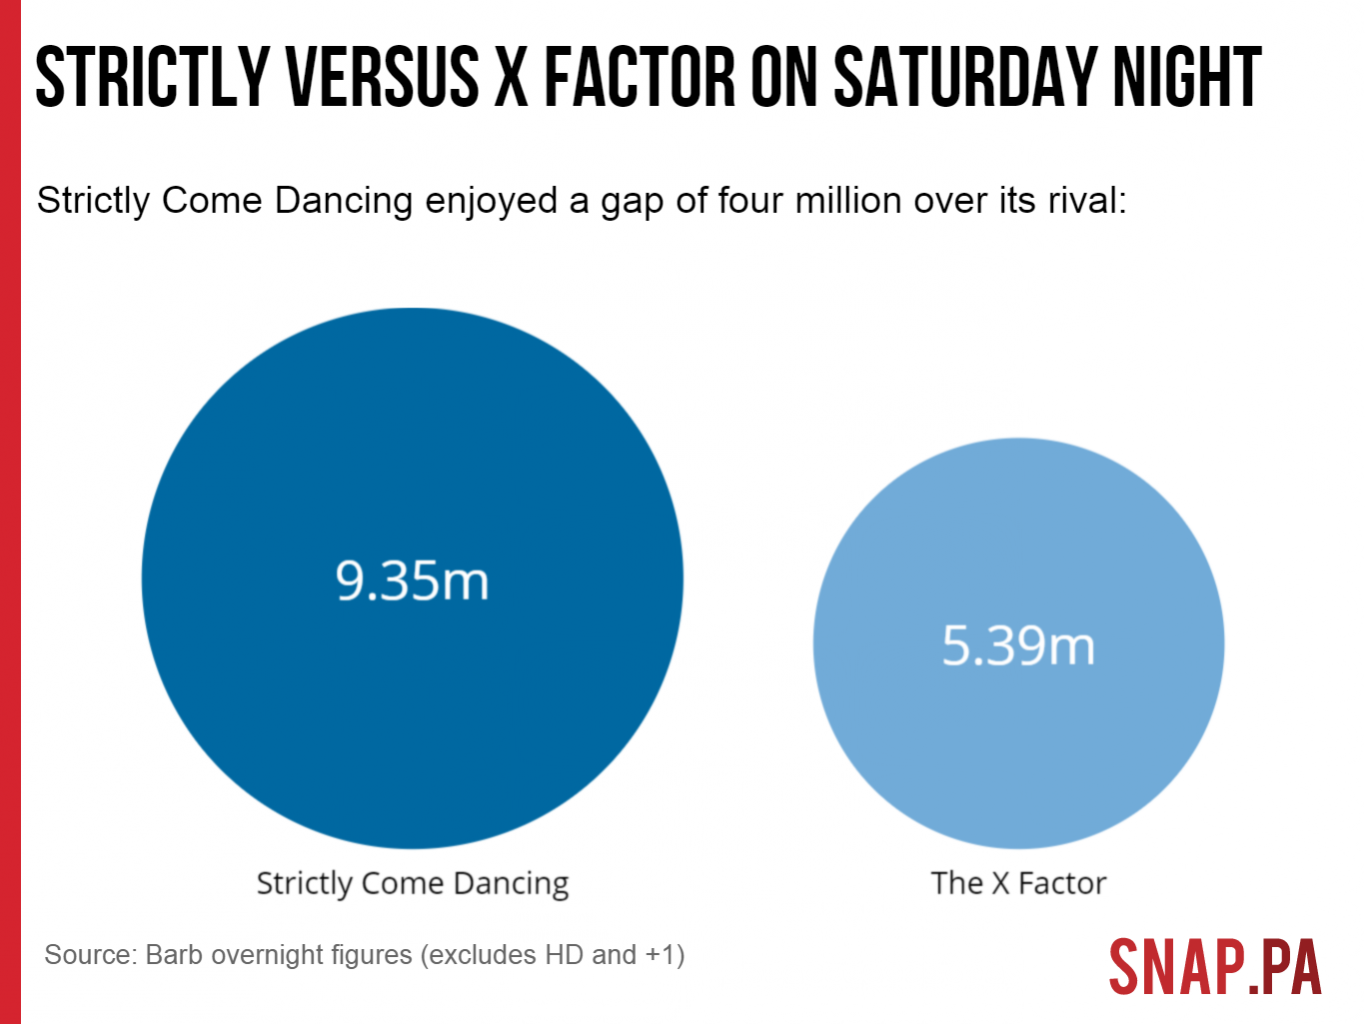 strictly versus x factor on saturday night